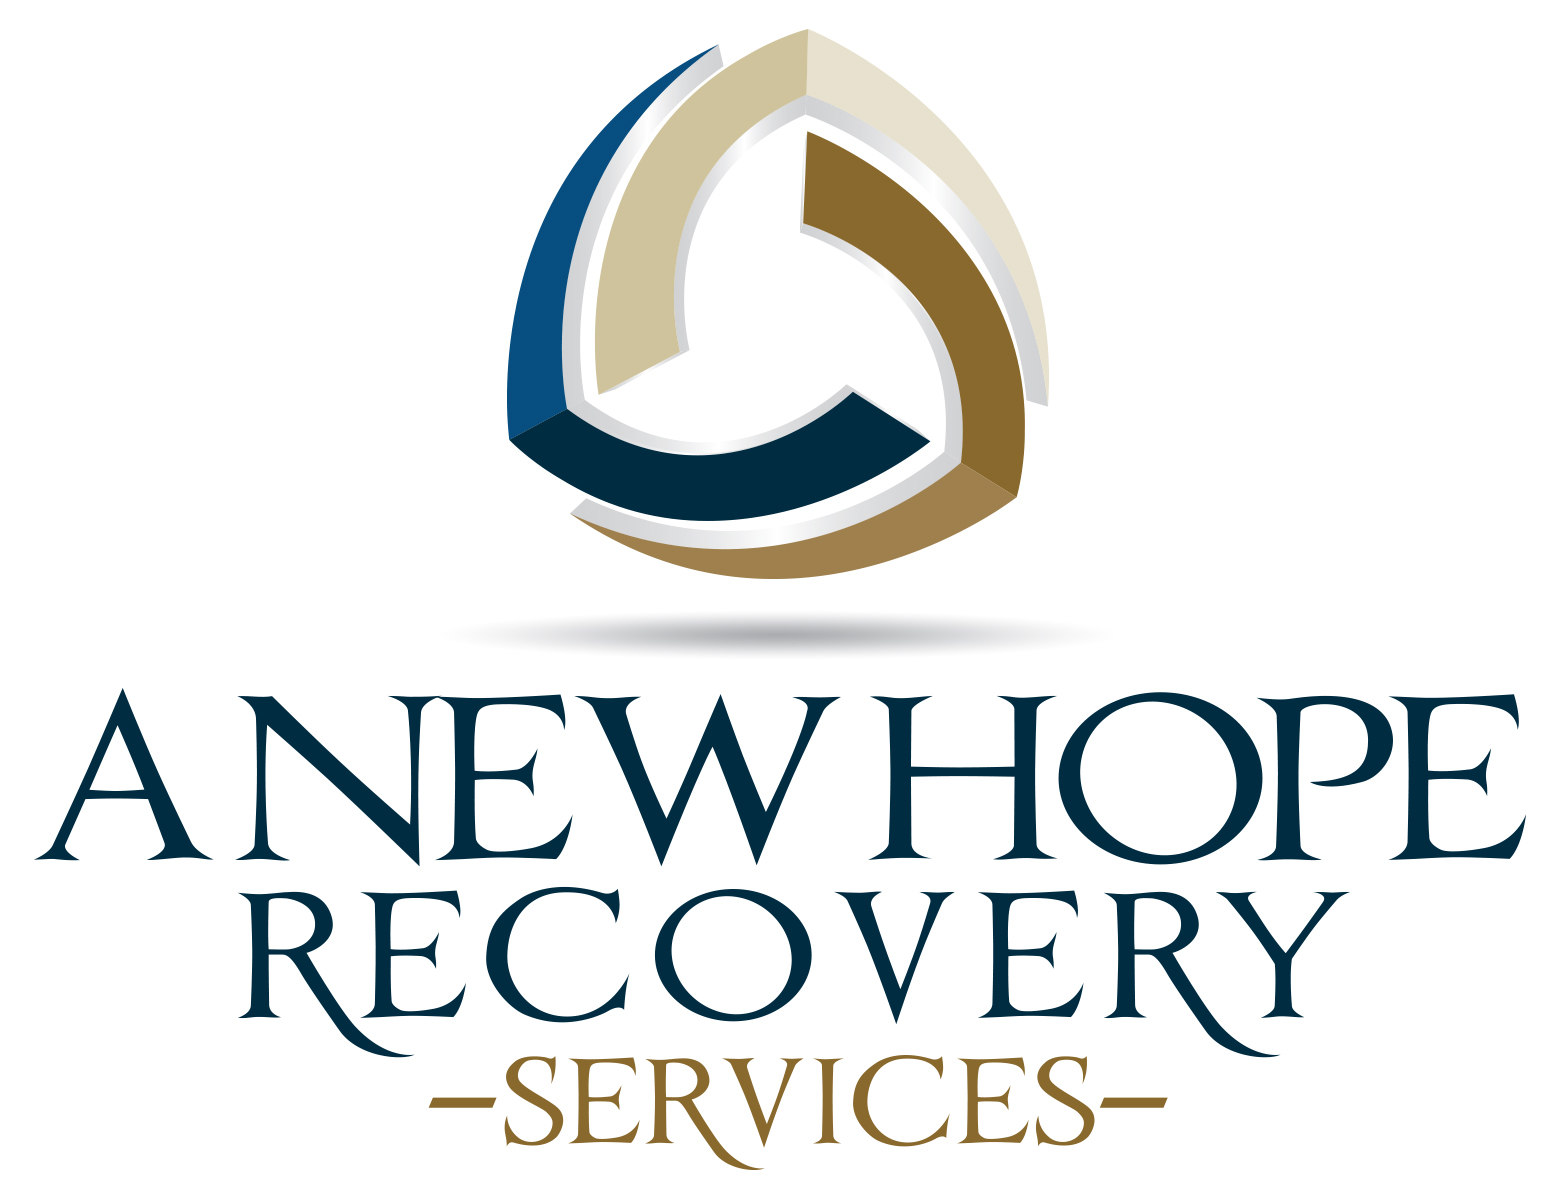 A New Hope Recovery Services